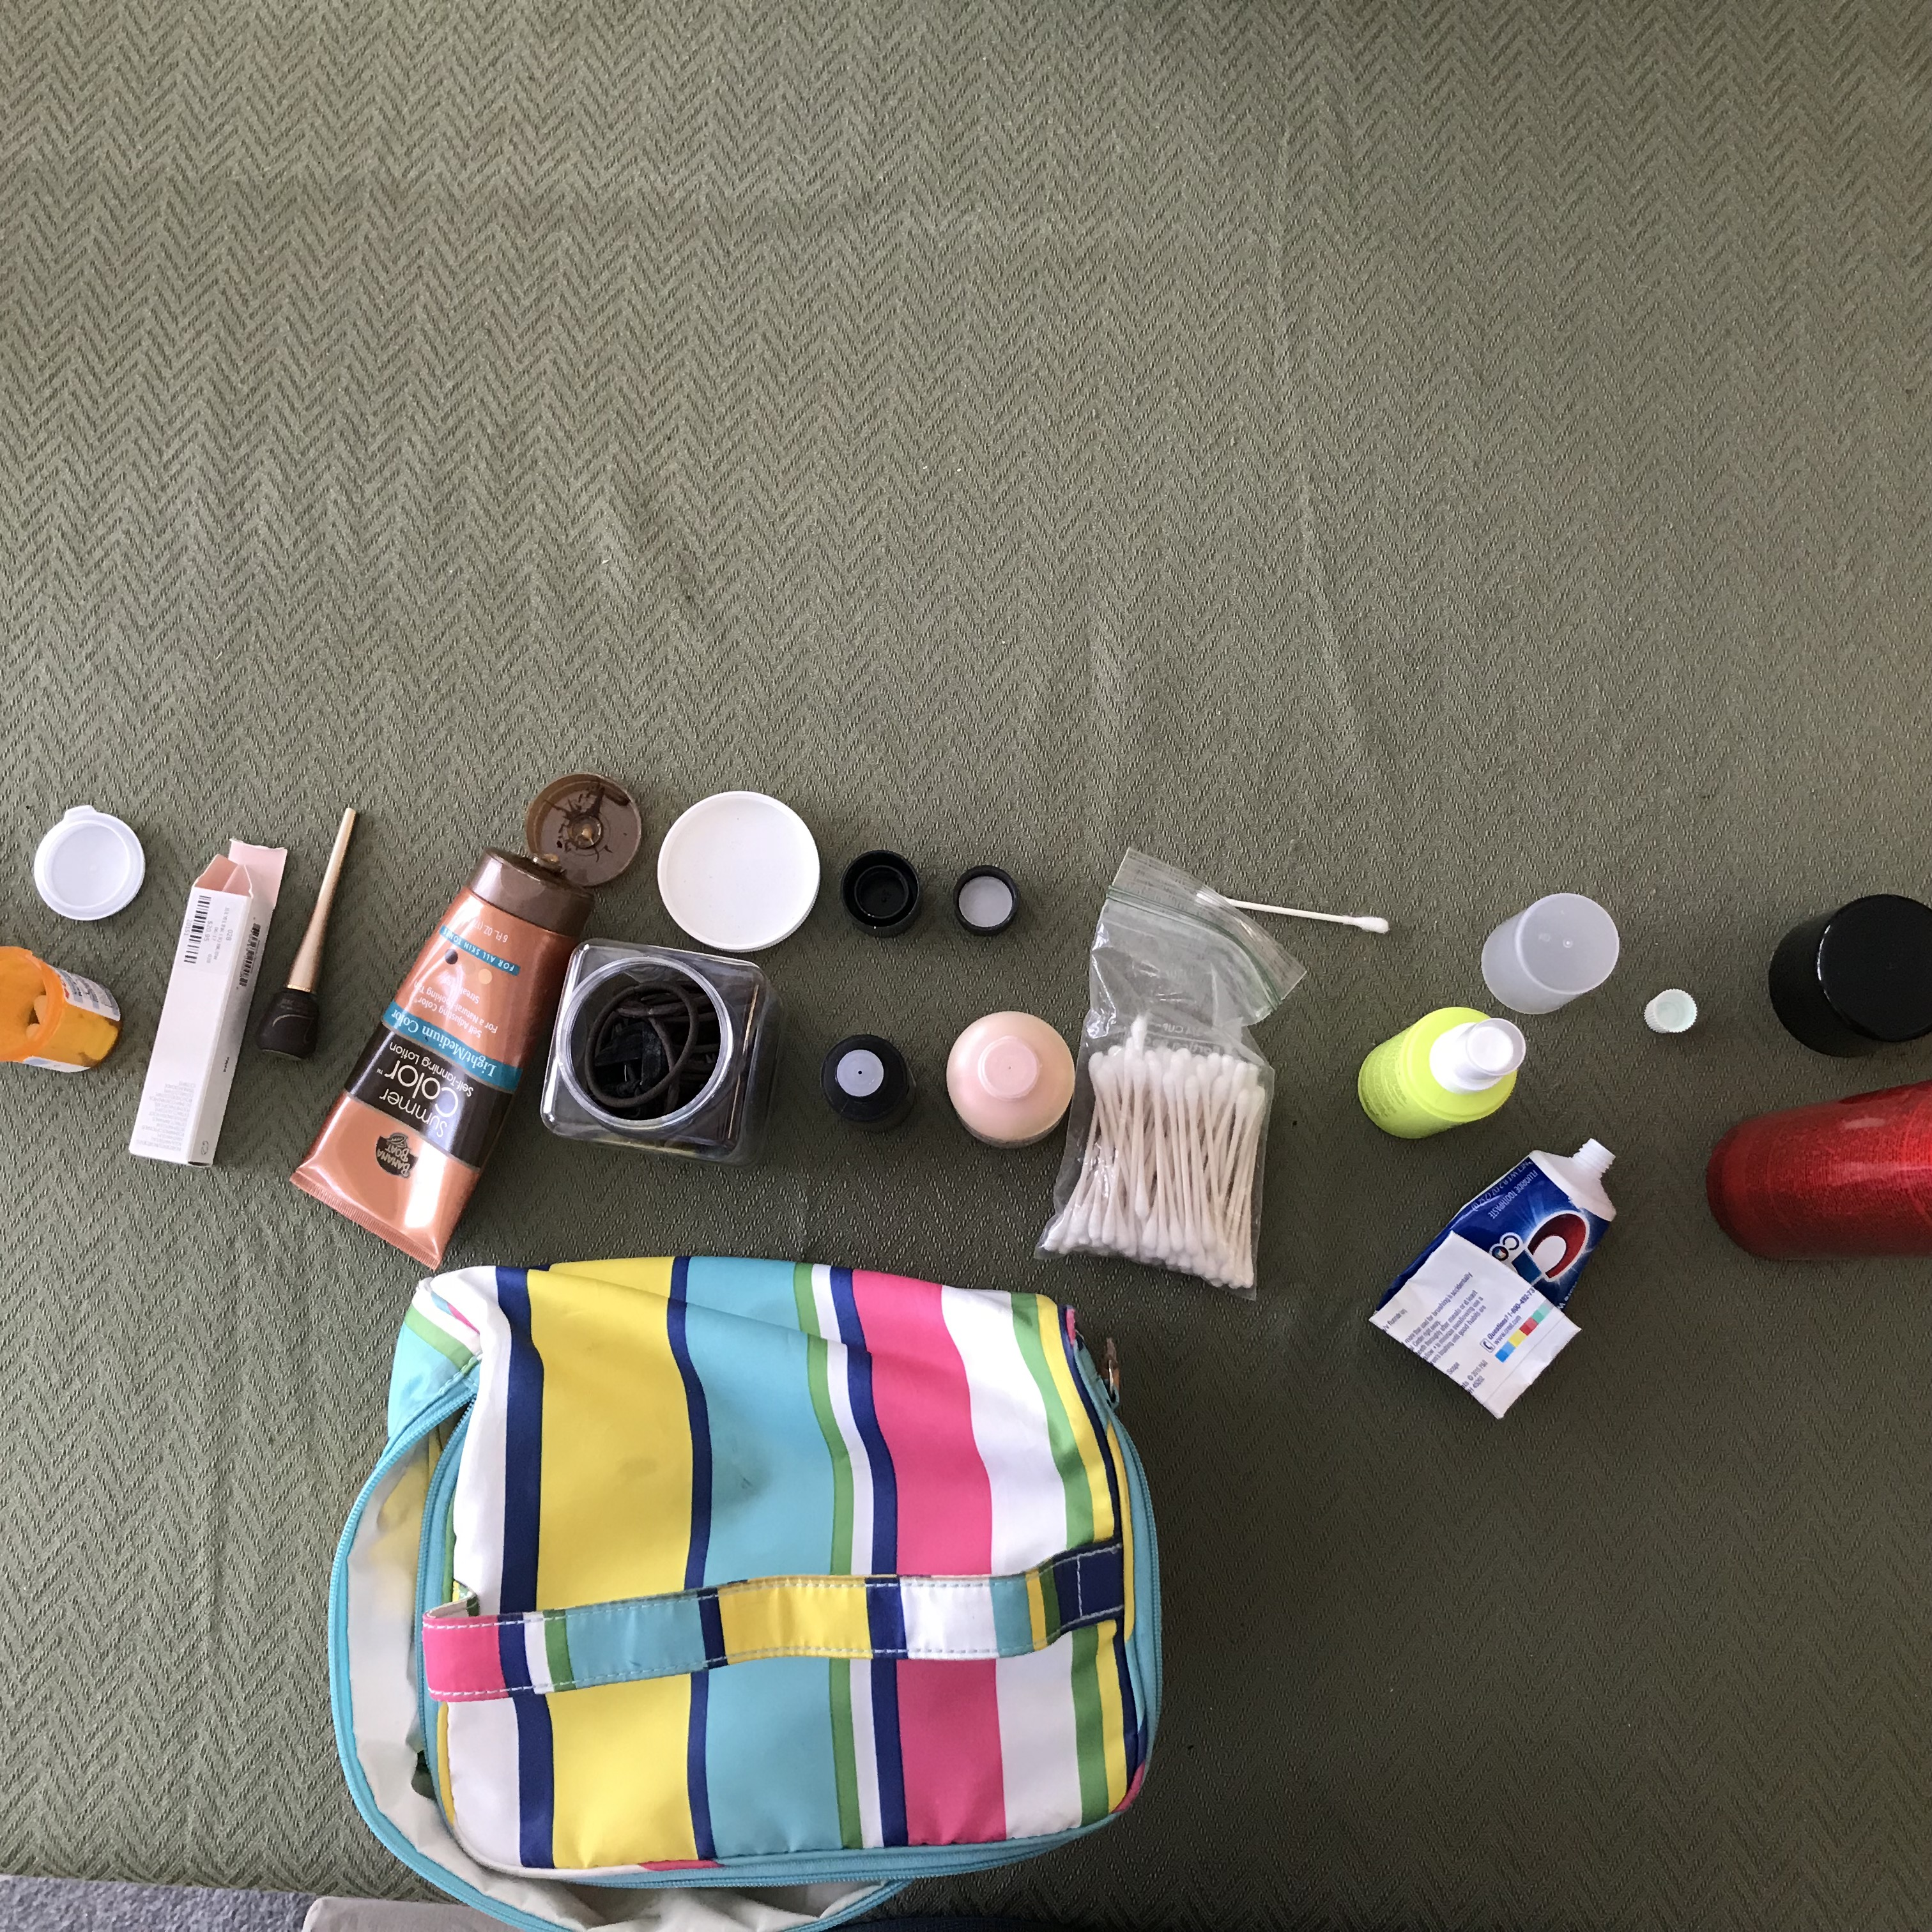 Assorted items from a makeup bag